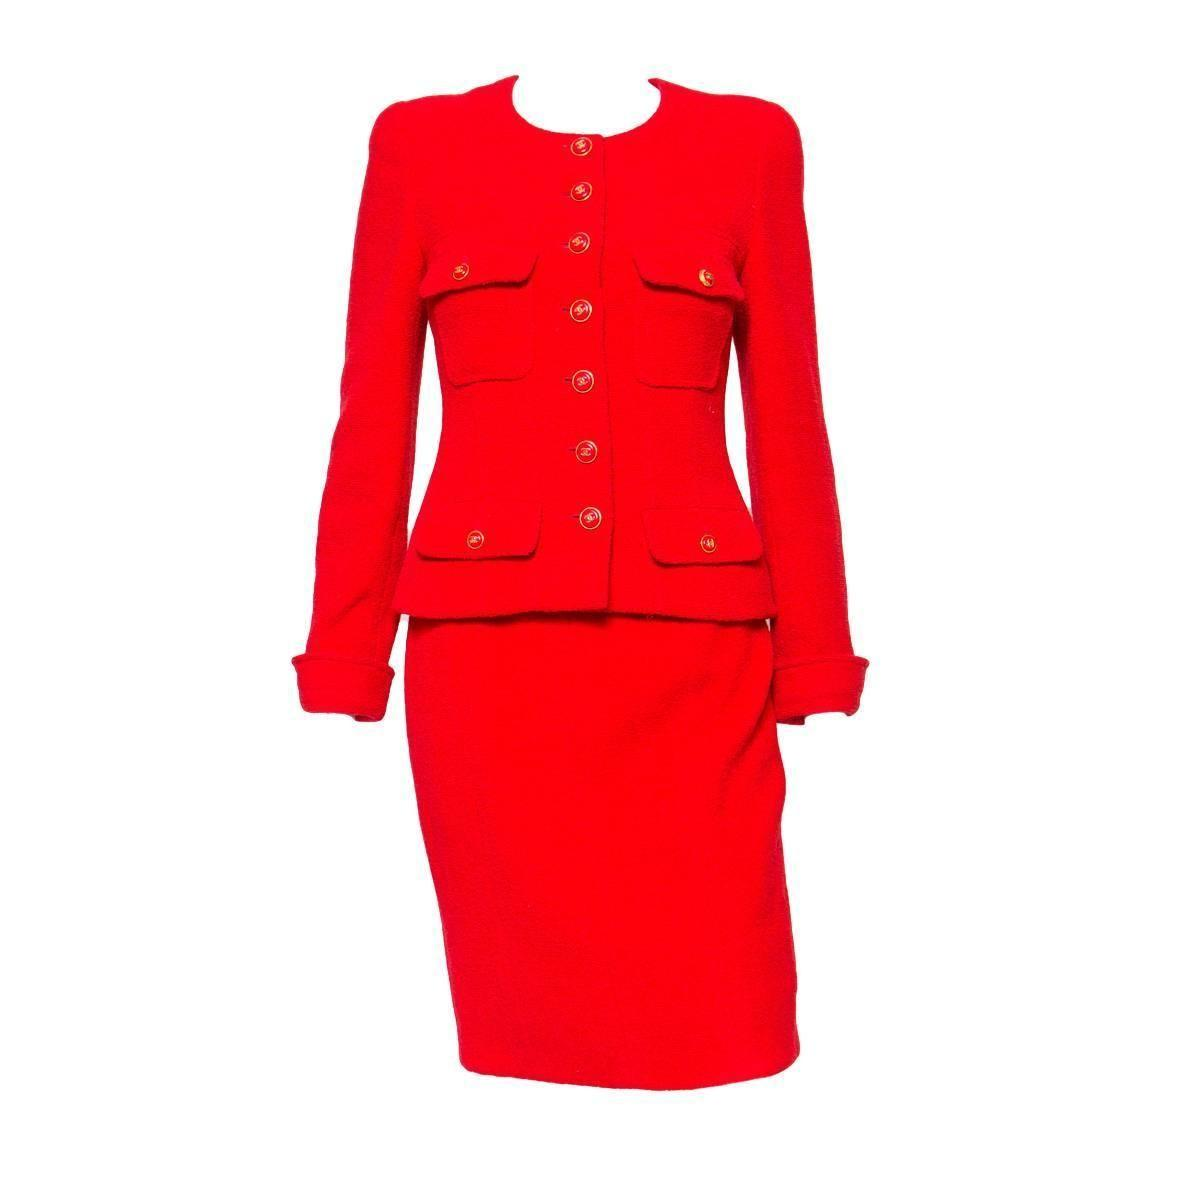 1990s Chanel Iconic Red Boucle Skirt Suit 1stdibs